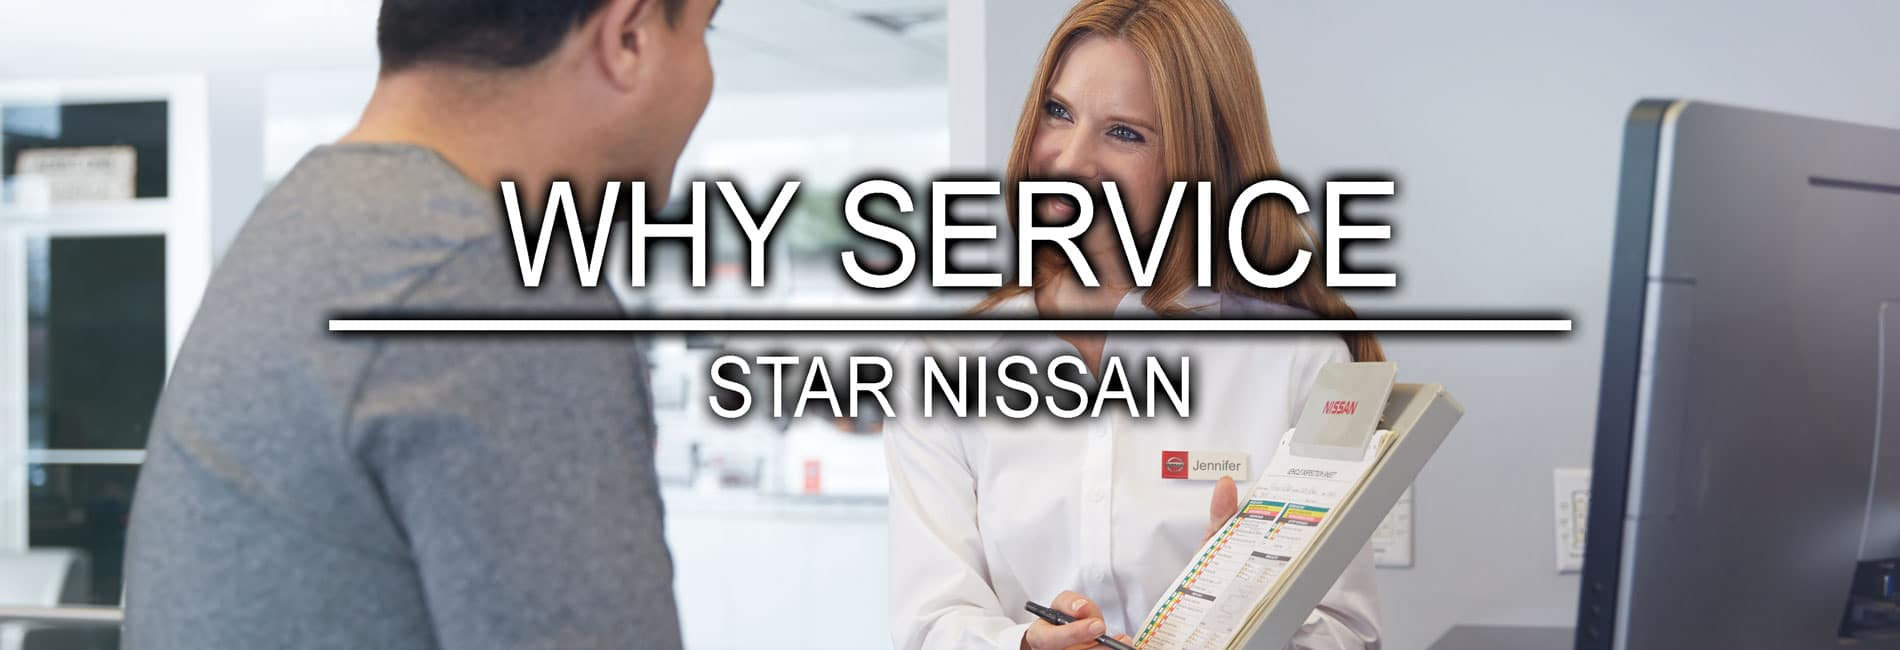 Why Service at Star Nissan